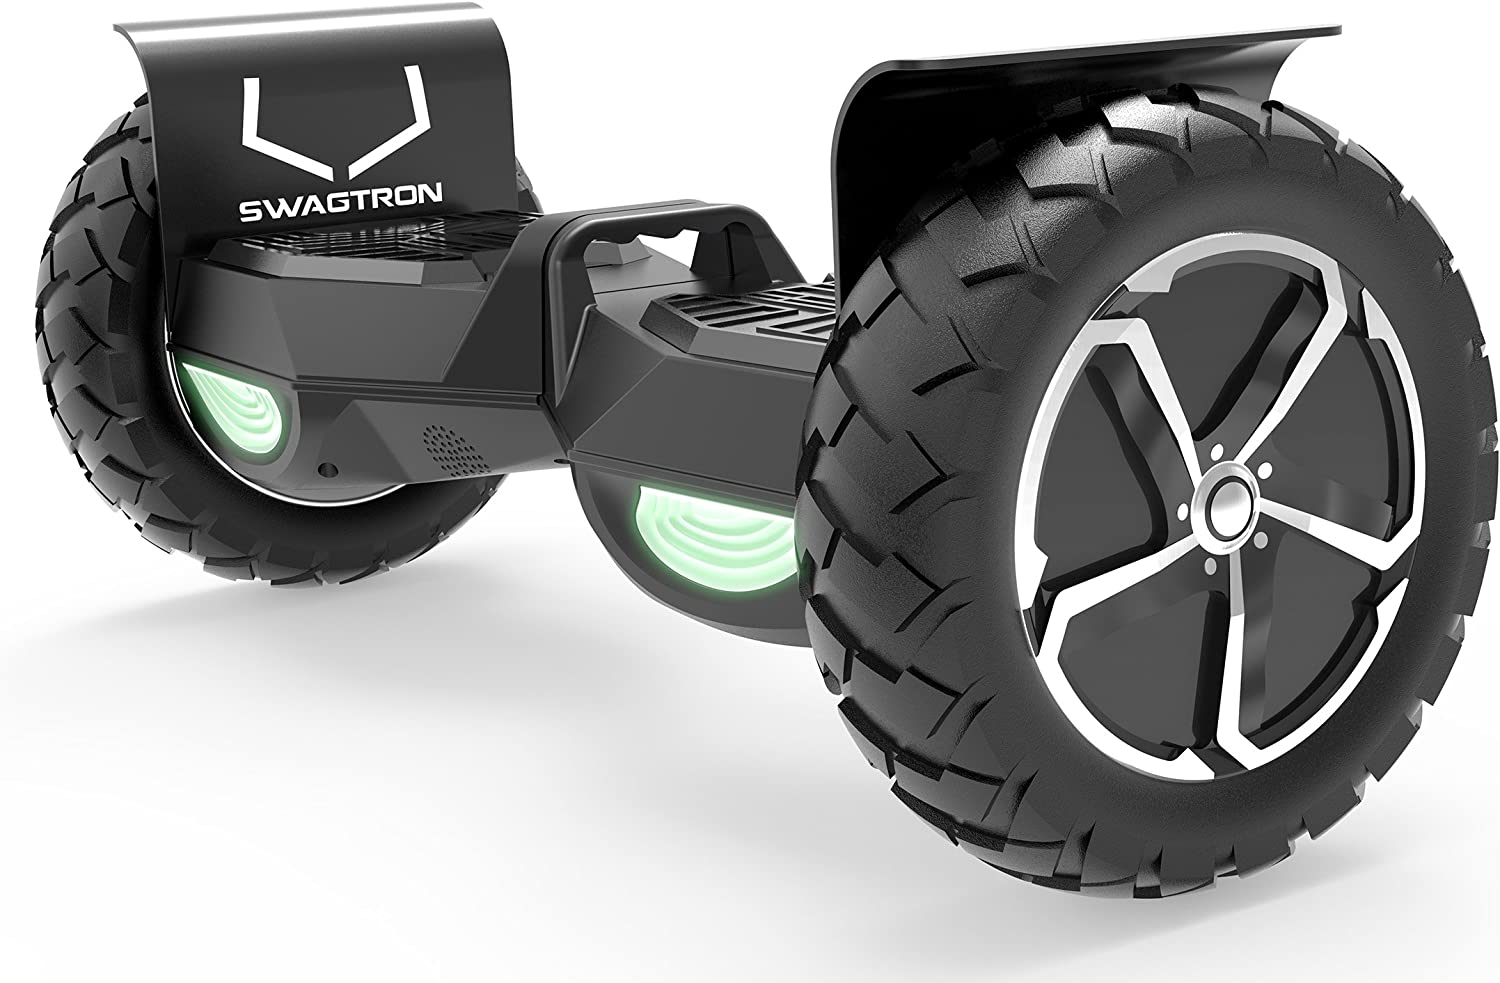 Swagtron Swagboard Outlaw T6 Off-Road Hoverboard - First in The World to Handle Over 380 LBS / US